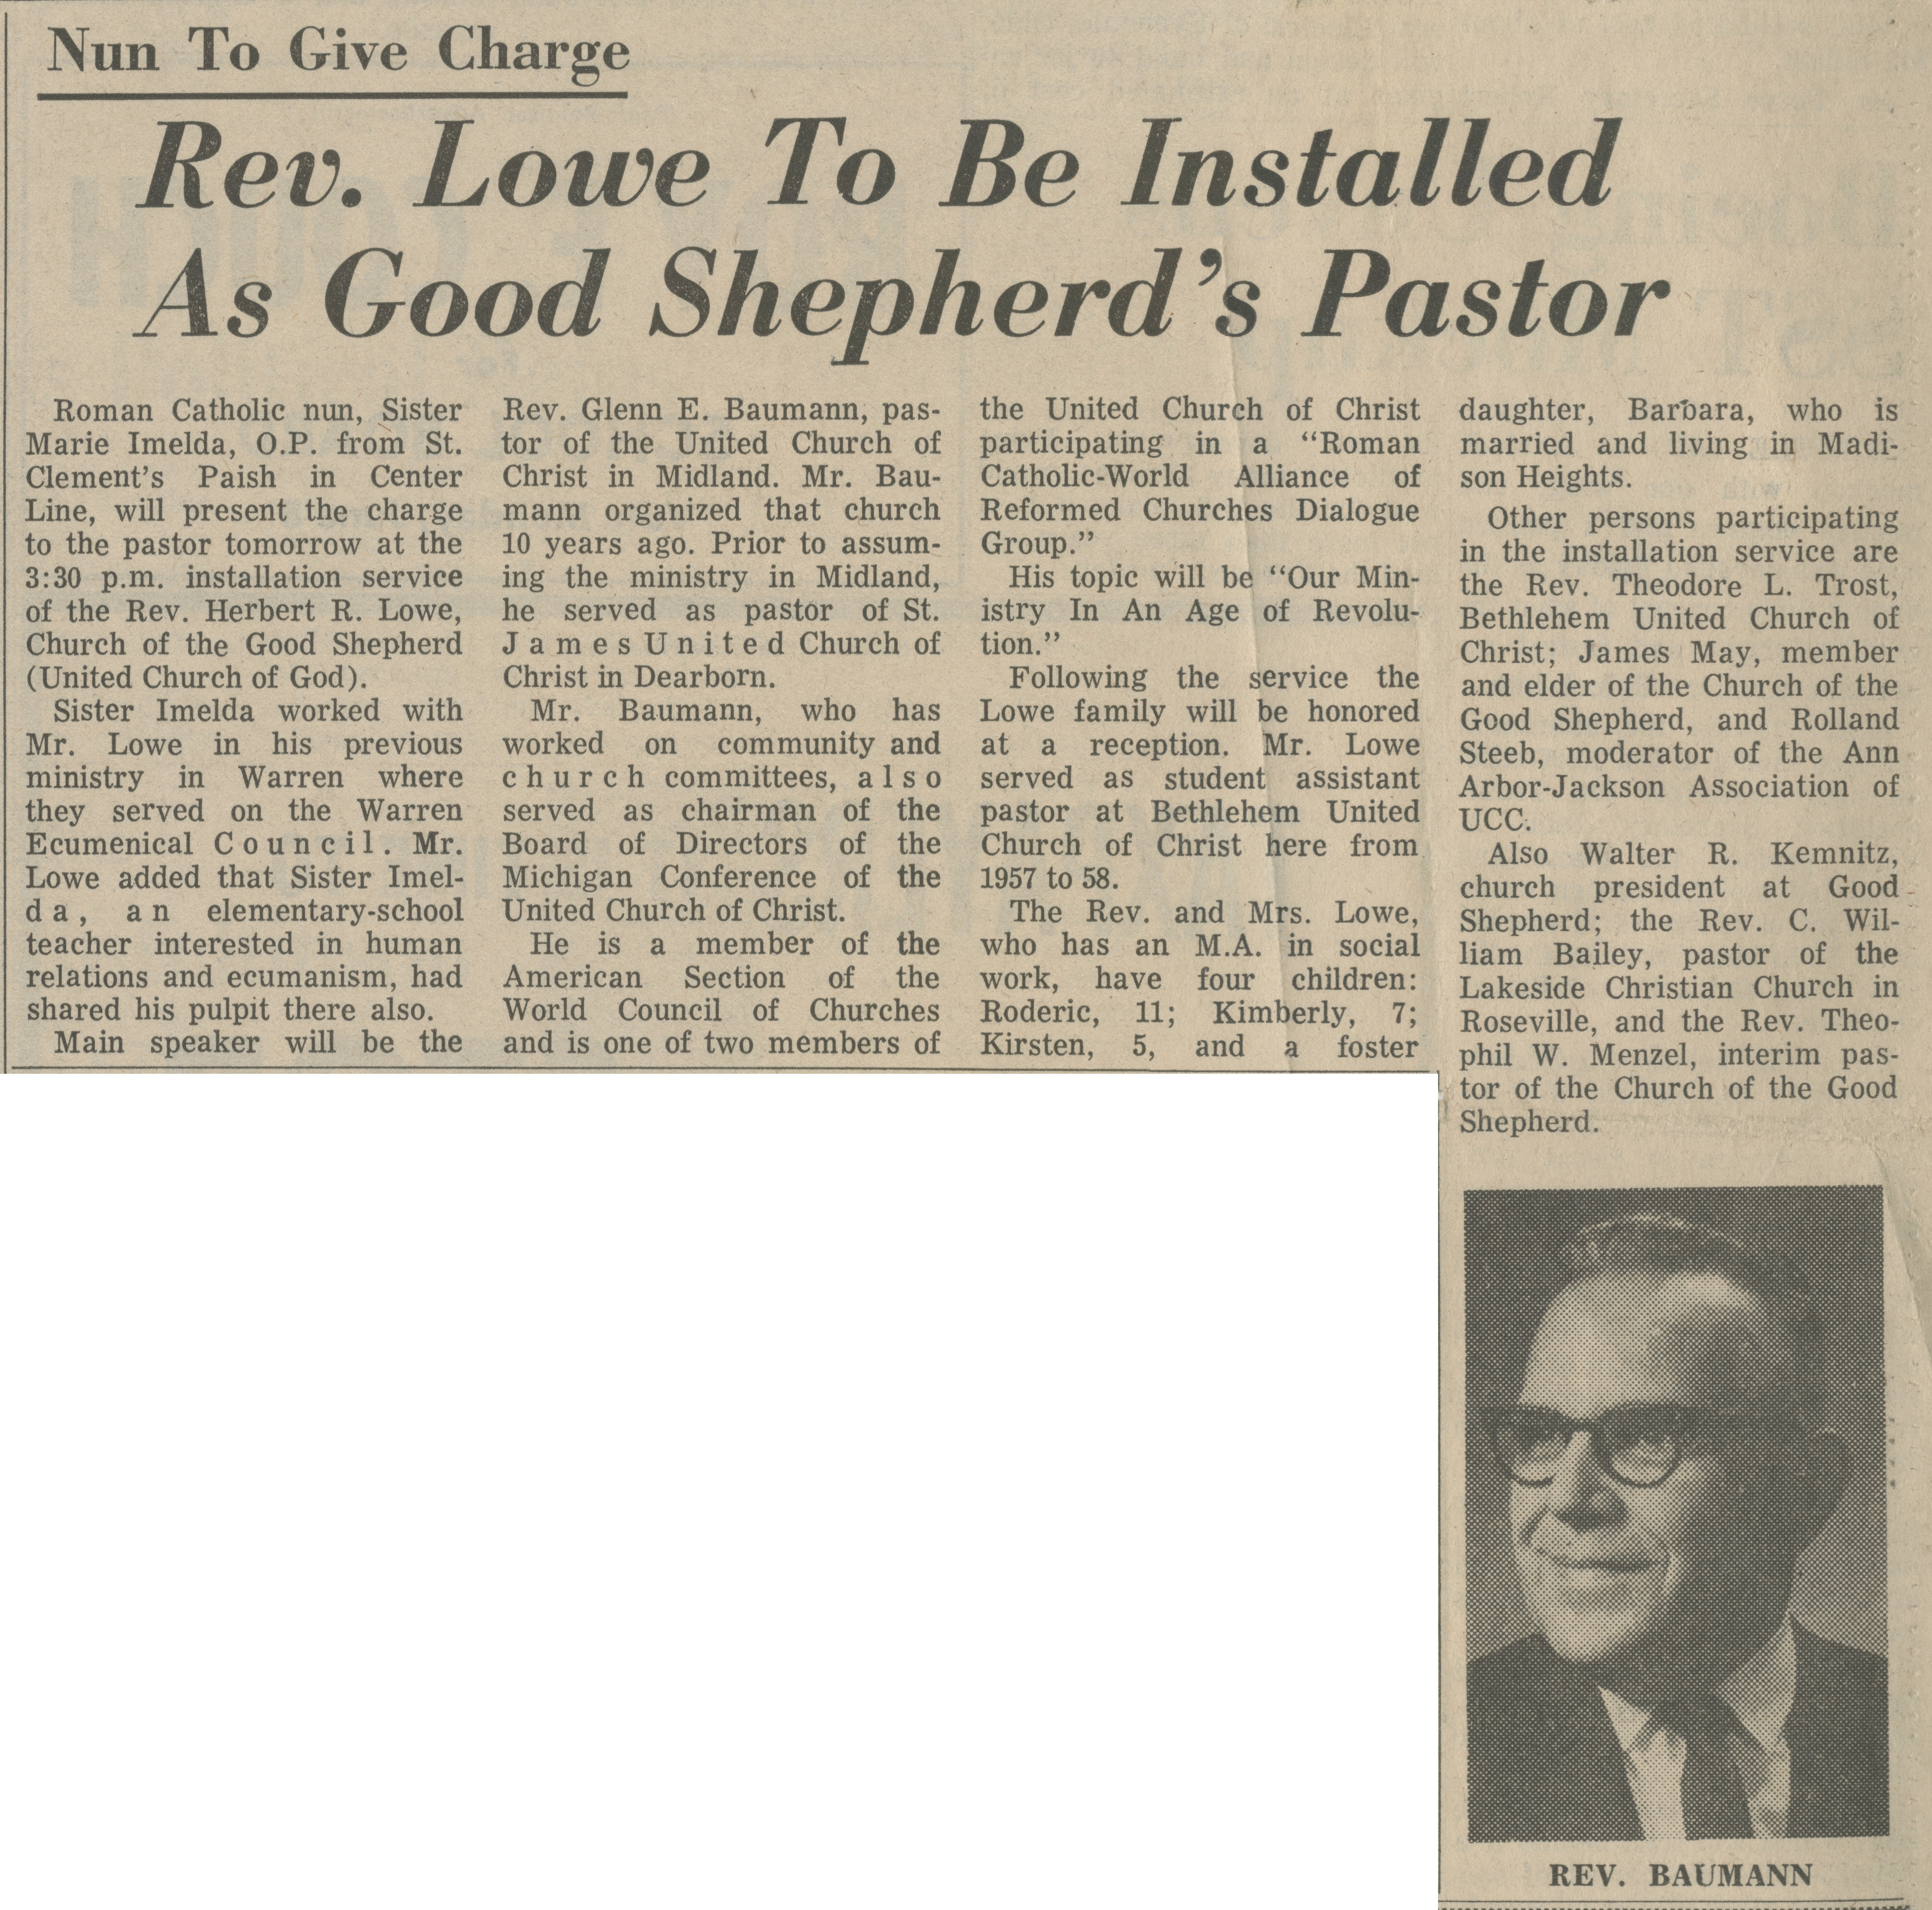 Rev. Lowe To Be Installed As Good Shepherd's Pastor image